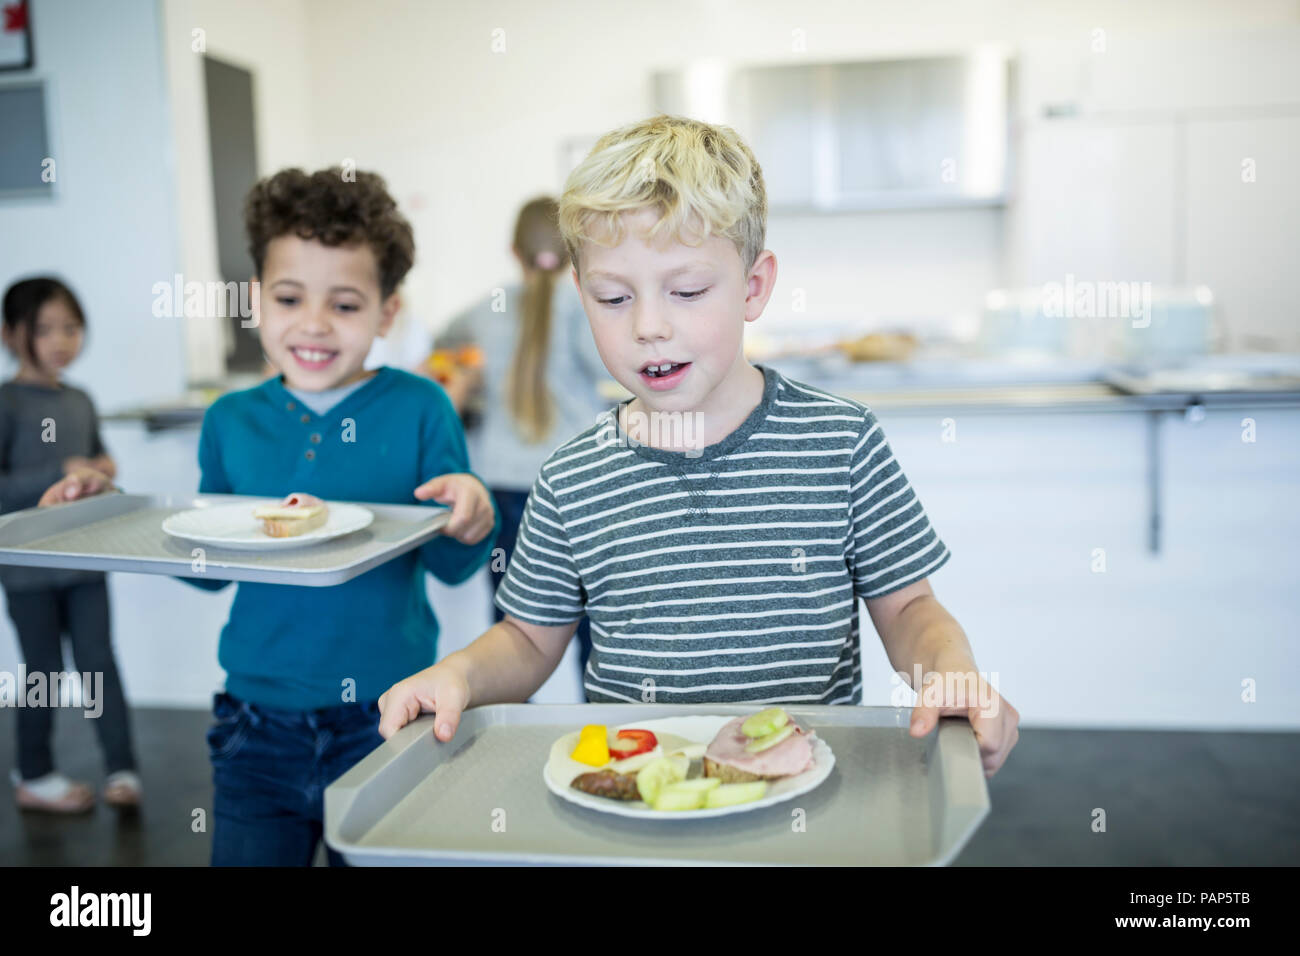 Pupils carrying trays in school canteen - Stock Image